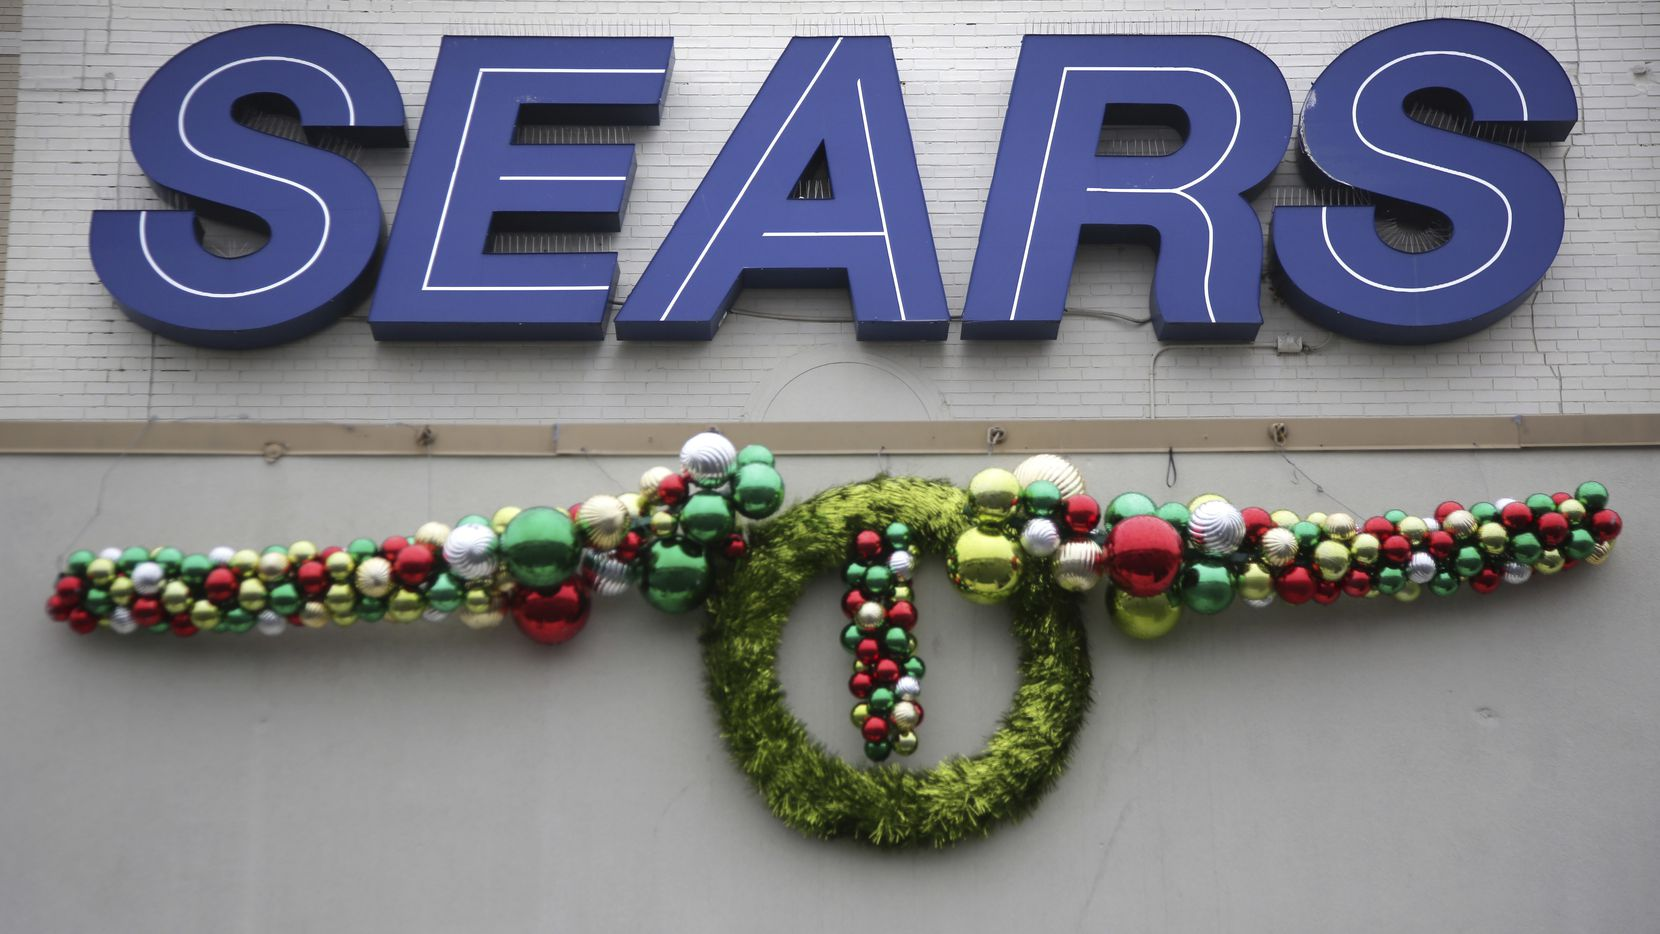 This Jan. 8, 2019, file photo shows a Sears store in Hackensack, N.J.